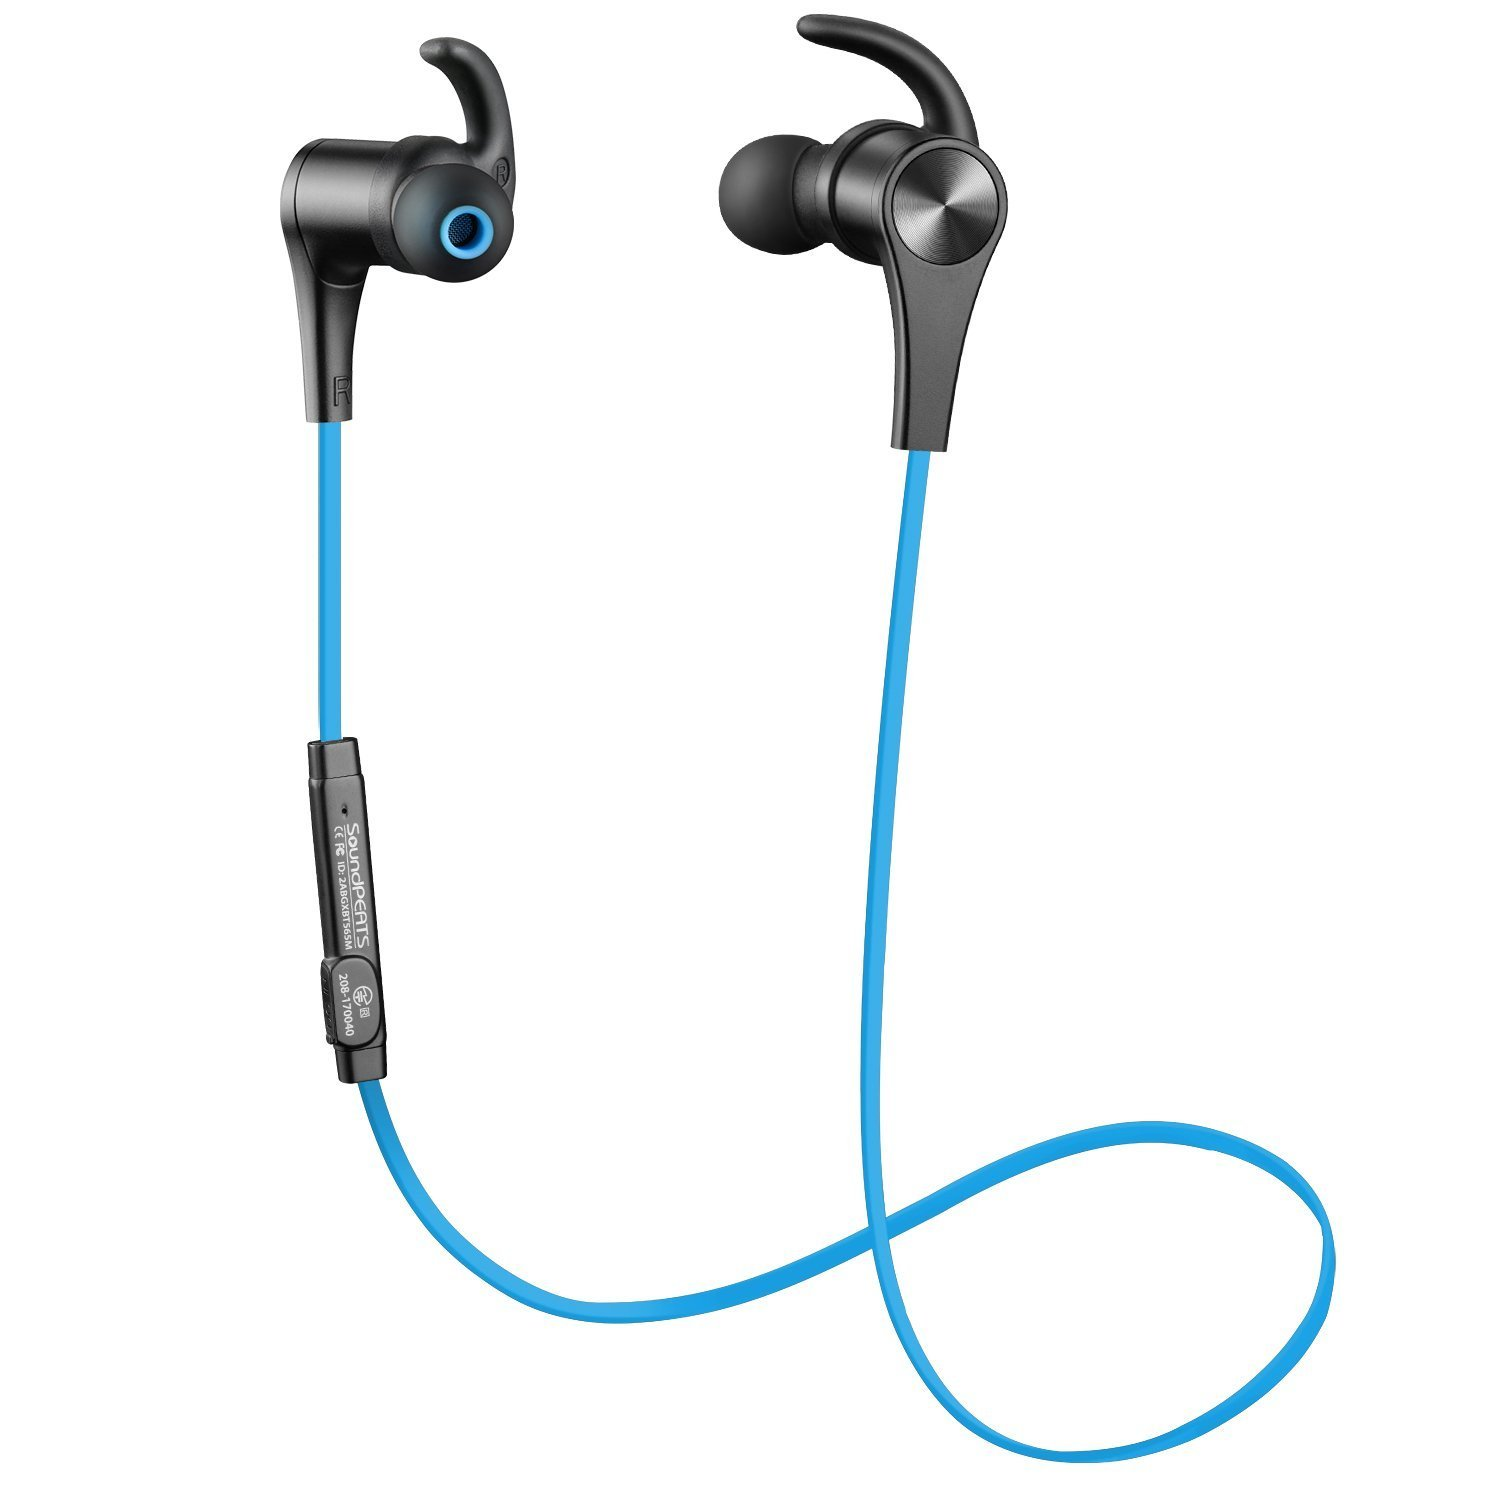 SoundPEATS Bluetooth Headphones Magnetic In-Ear Wireless Earbuds 4.1 Stereo Bluetooth Earphones for Sports Running With Mic (8 Hours Play Time, Hands-Free Calls, In-Line Control) - Blue